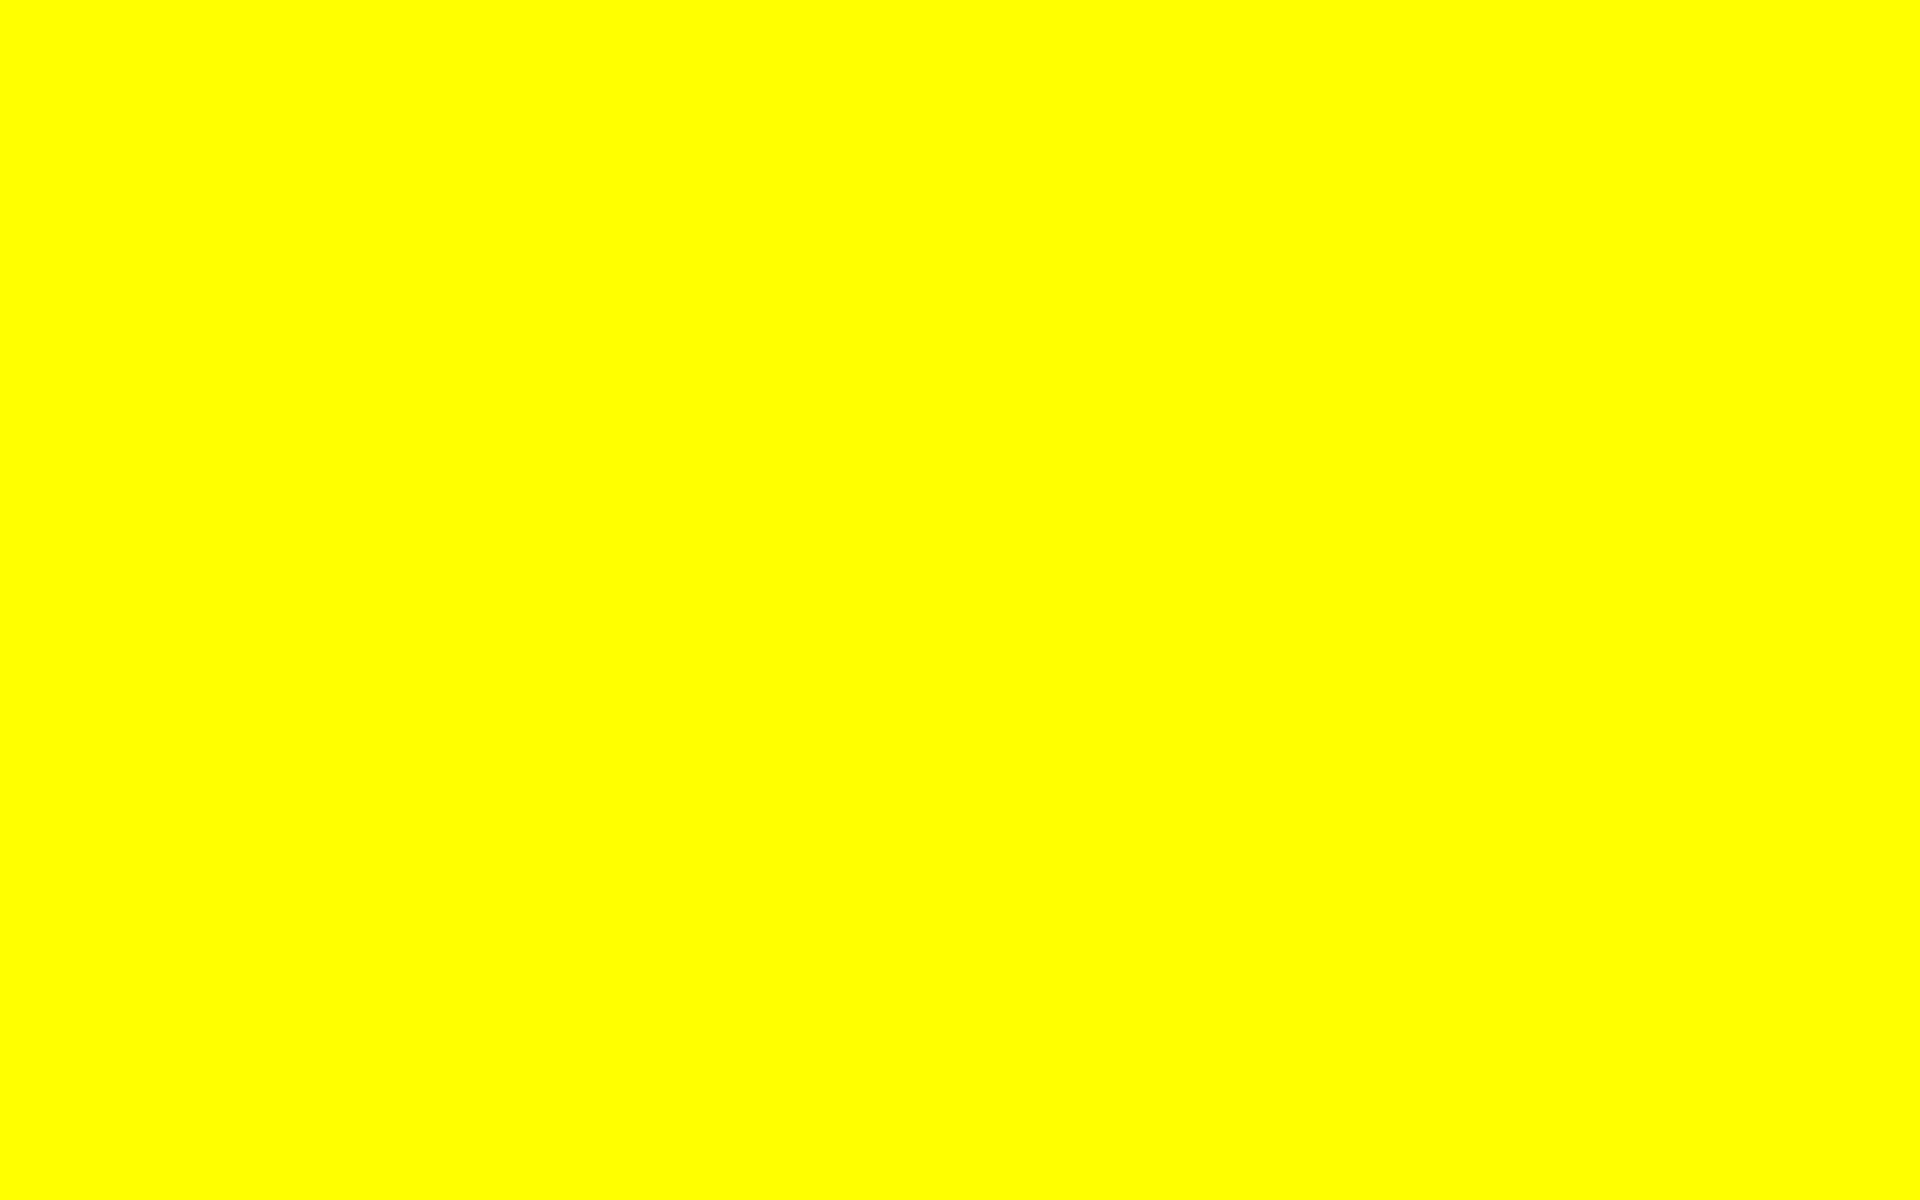 1920x1200 Yellow Solid Color Background